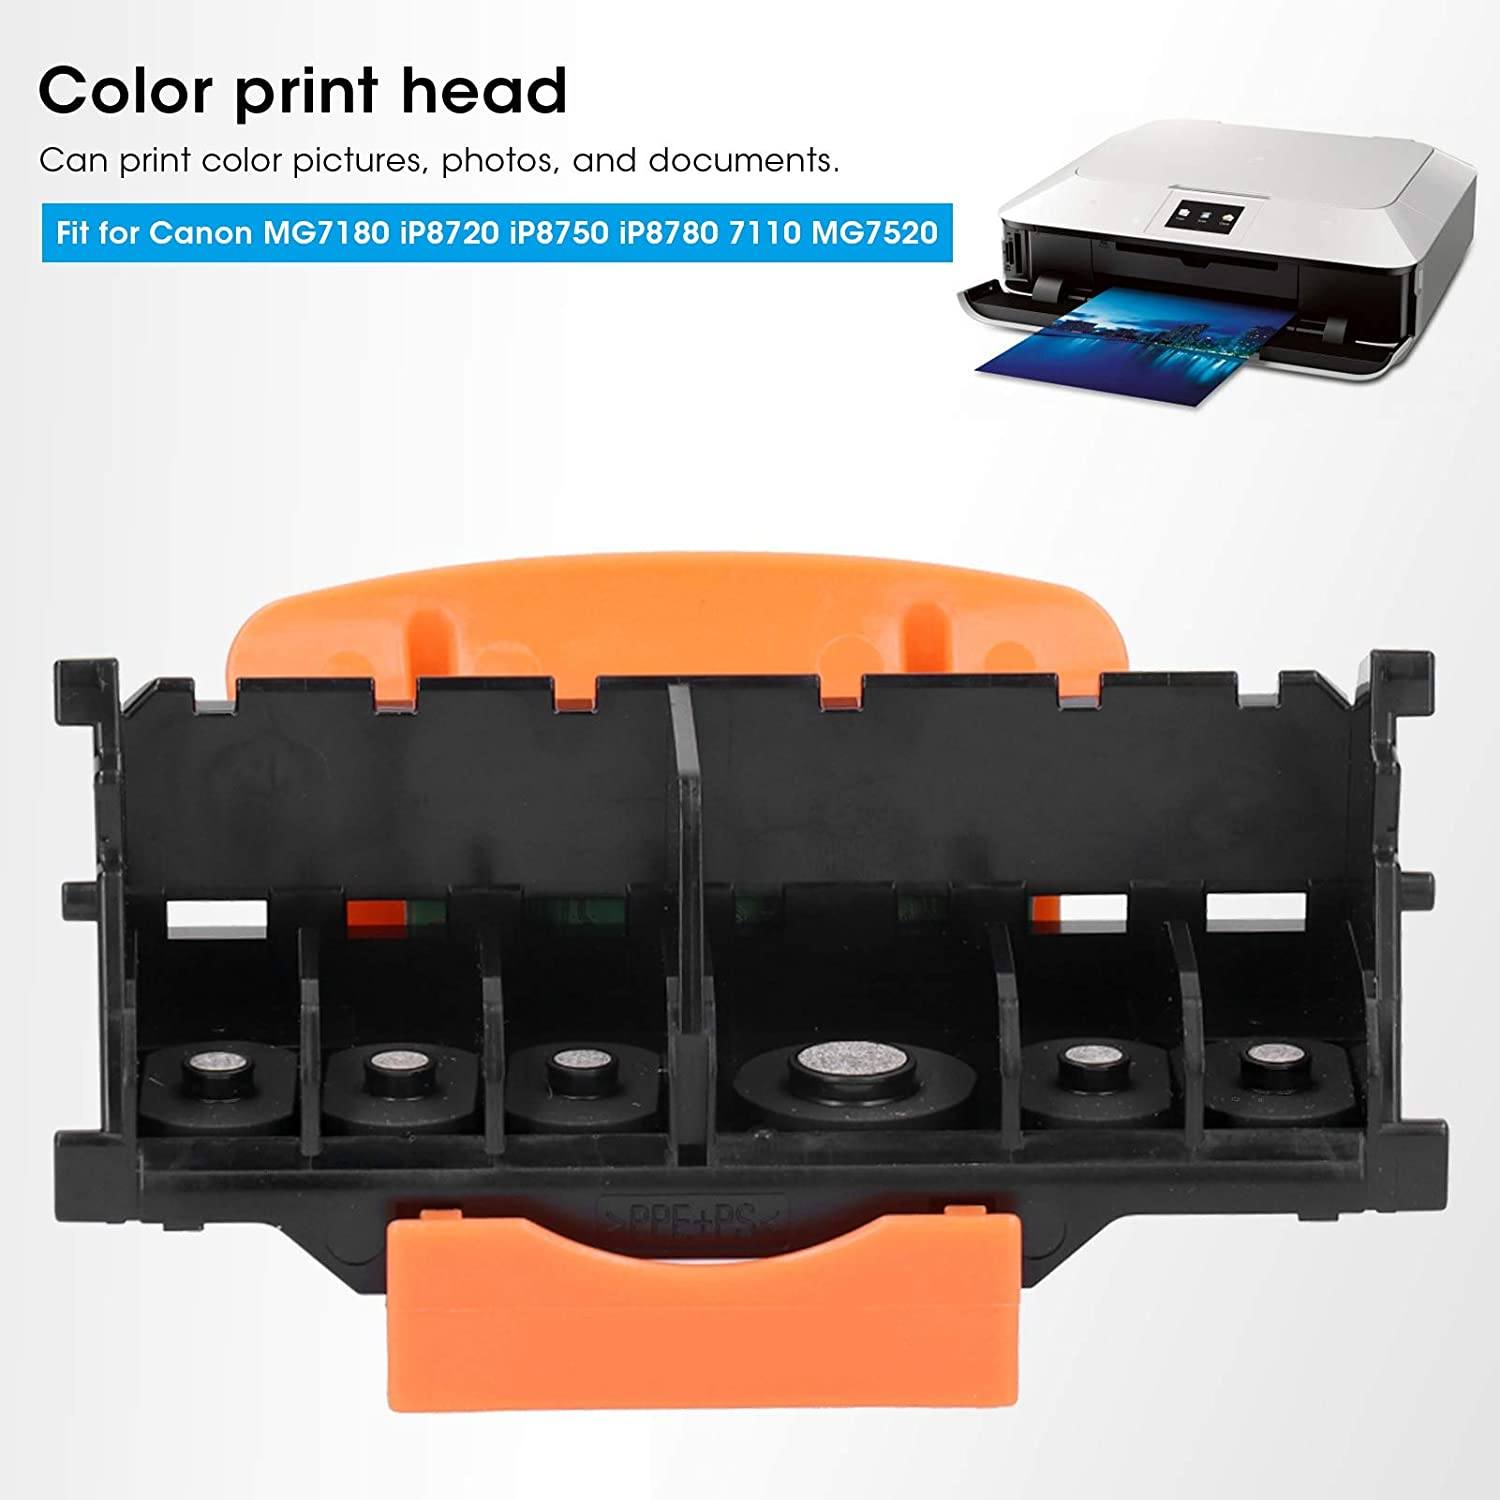 ABS Printer Print Heads, Print Head, for Computer Scanners Printers Office